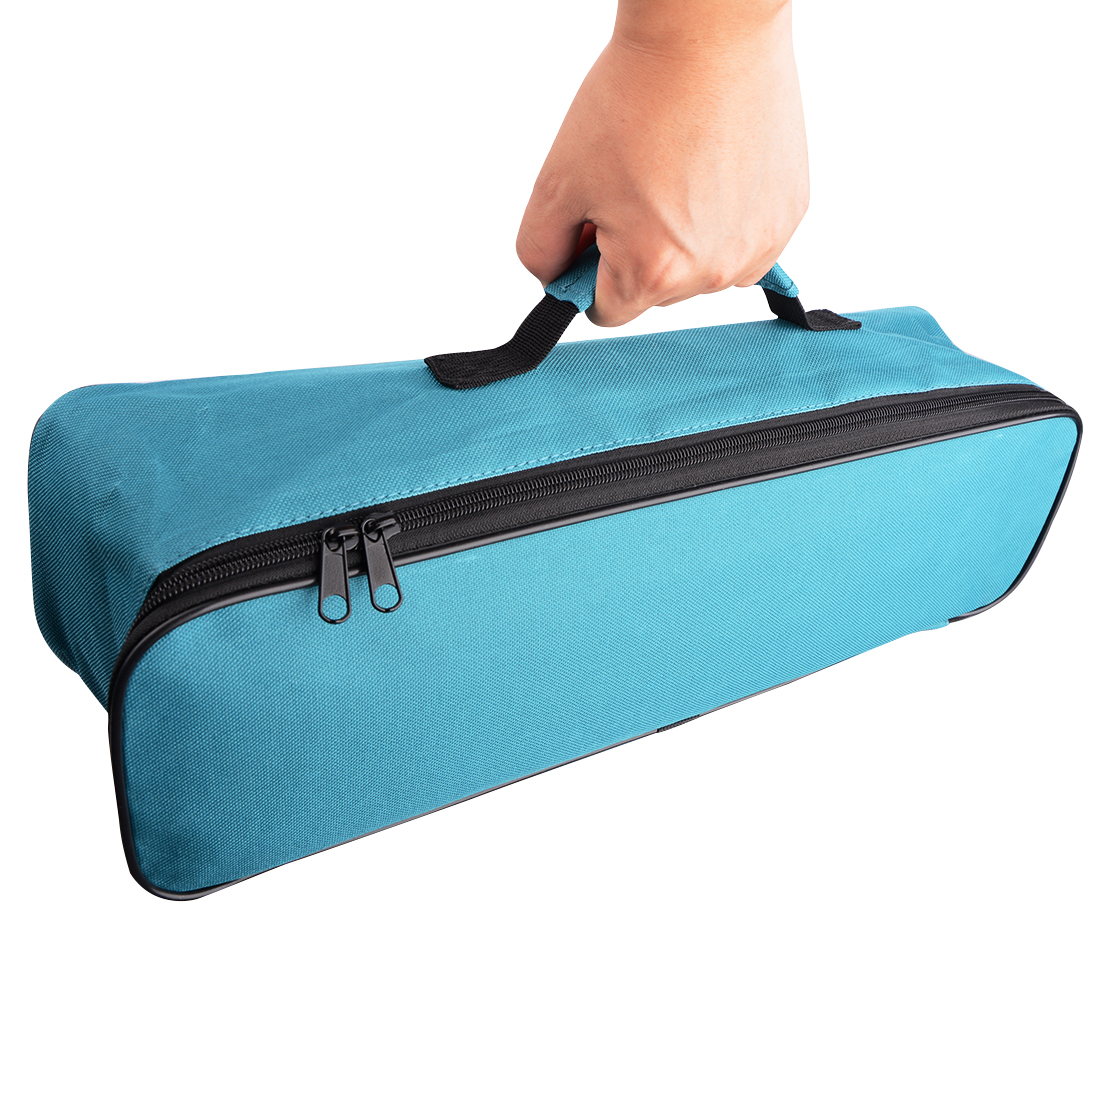 Tool Parts Good Multi-function Large Thick Tool Bag Canvas Electrical Tools Packaging For Electricians Car Emergency Repair Tool Part Pouch